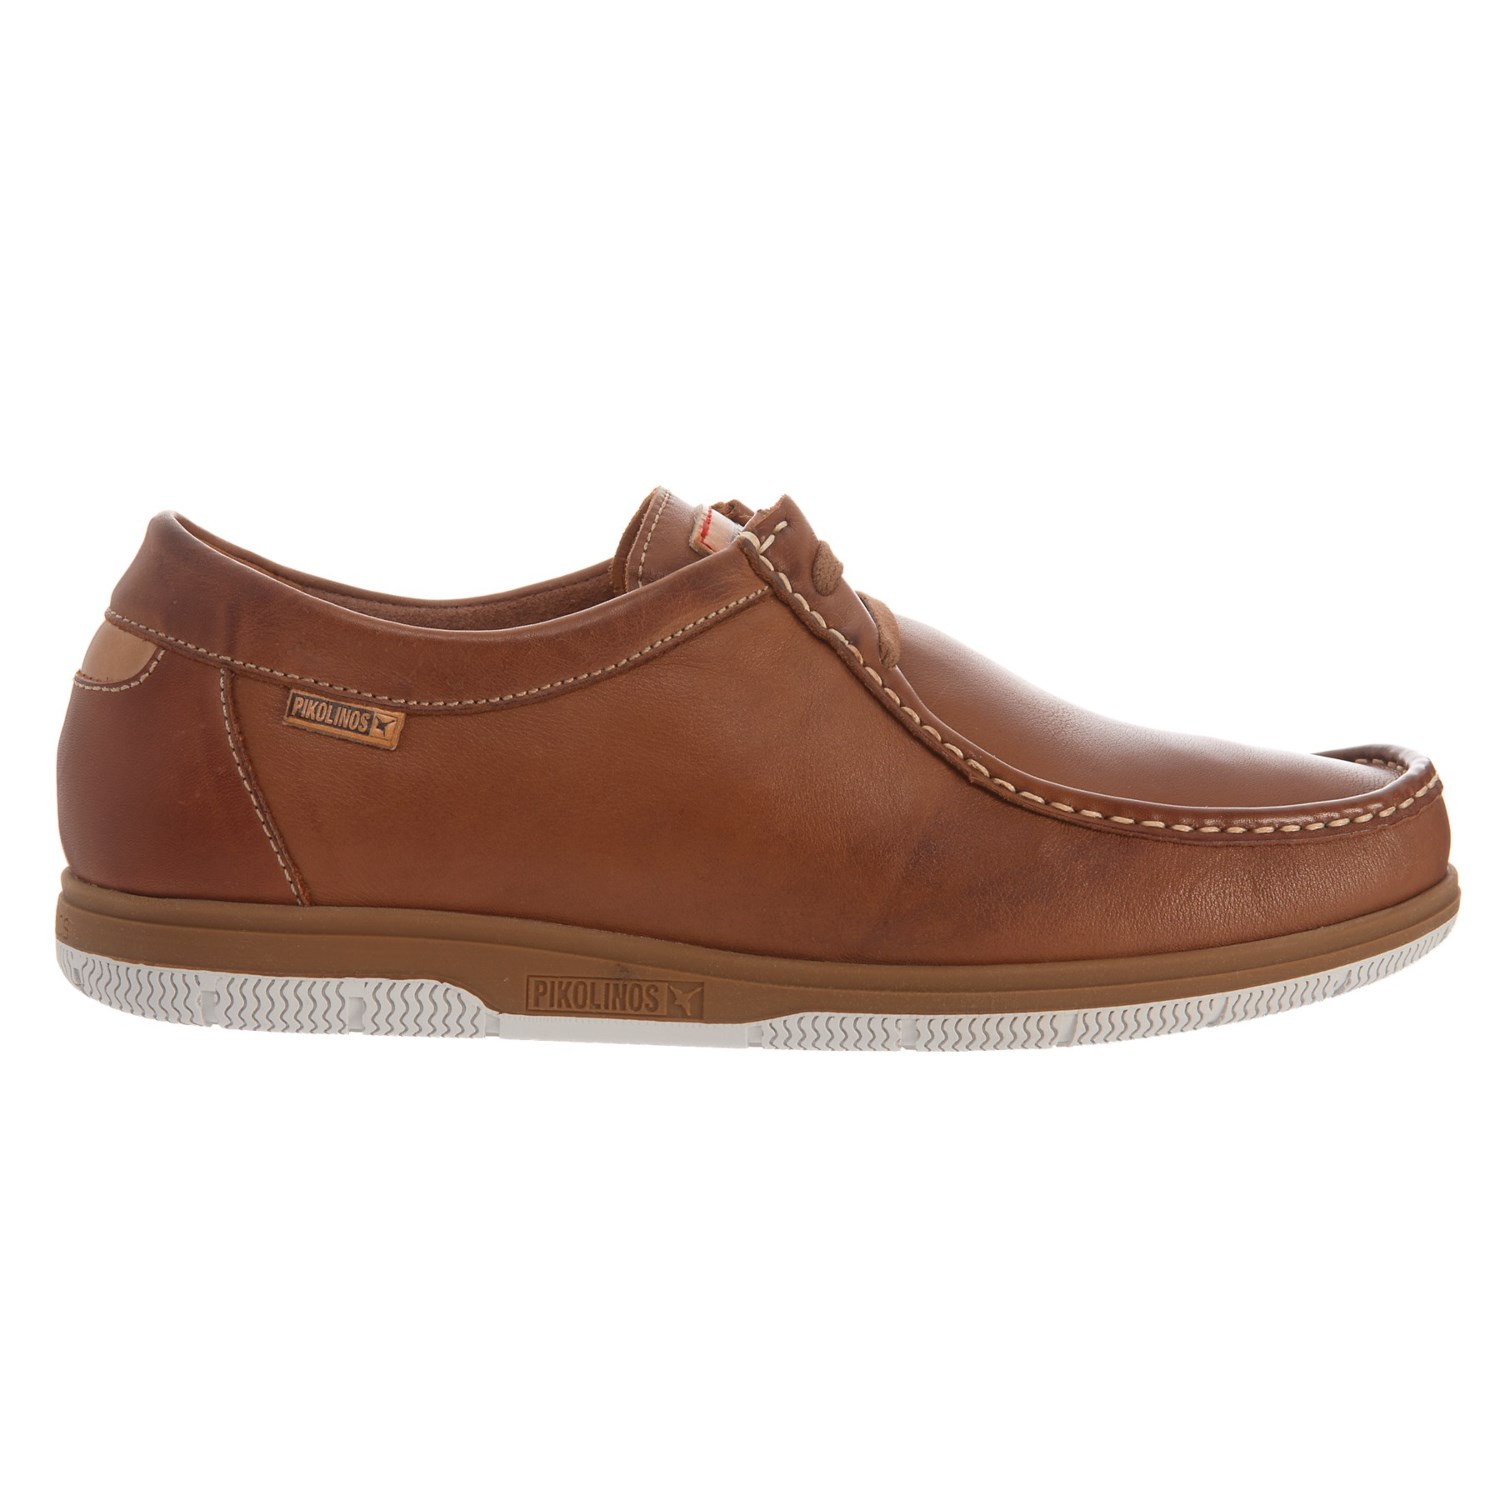 688417f3280 Pikolinos Made in Spain Almeria Shoes - Leather (For Men)